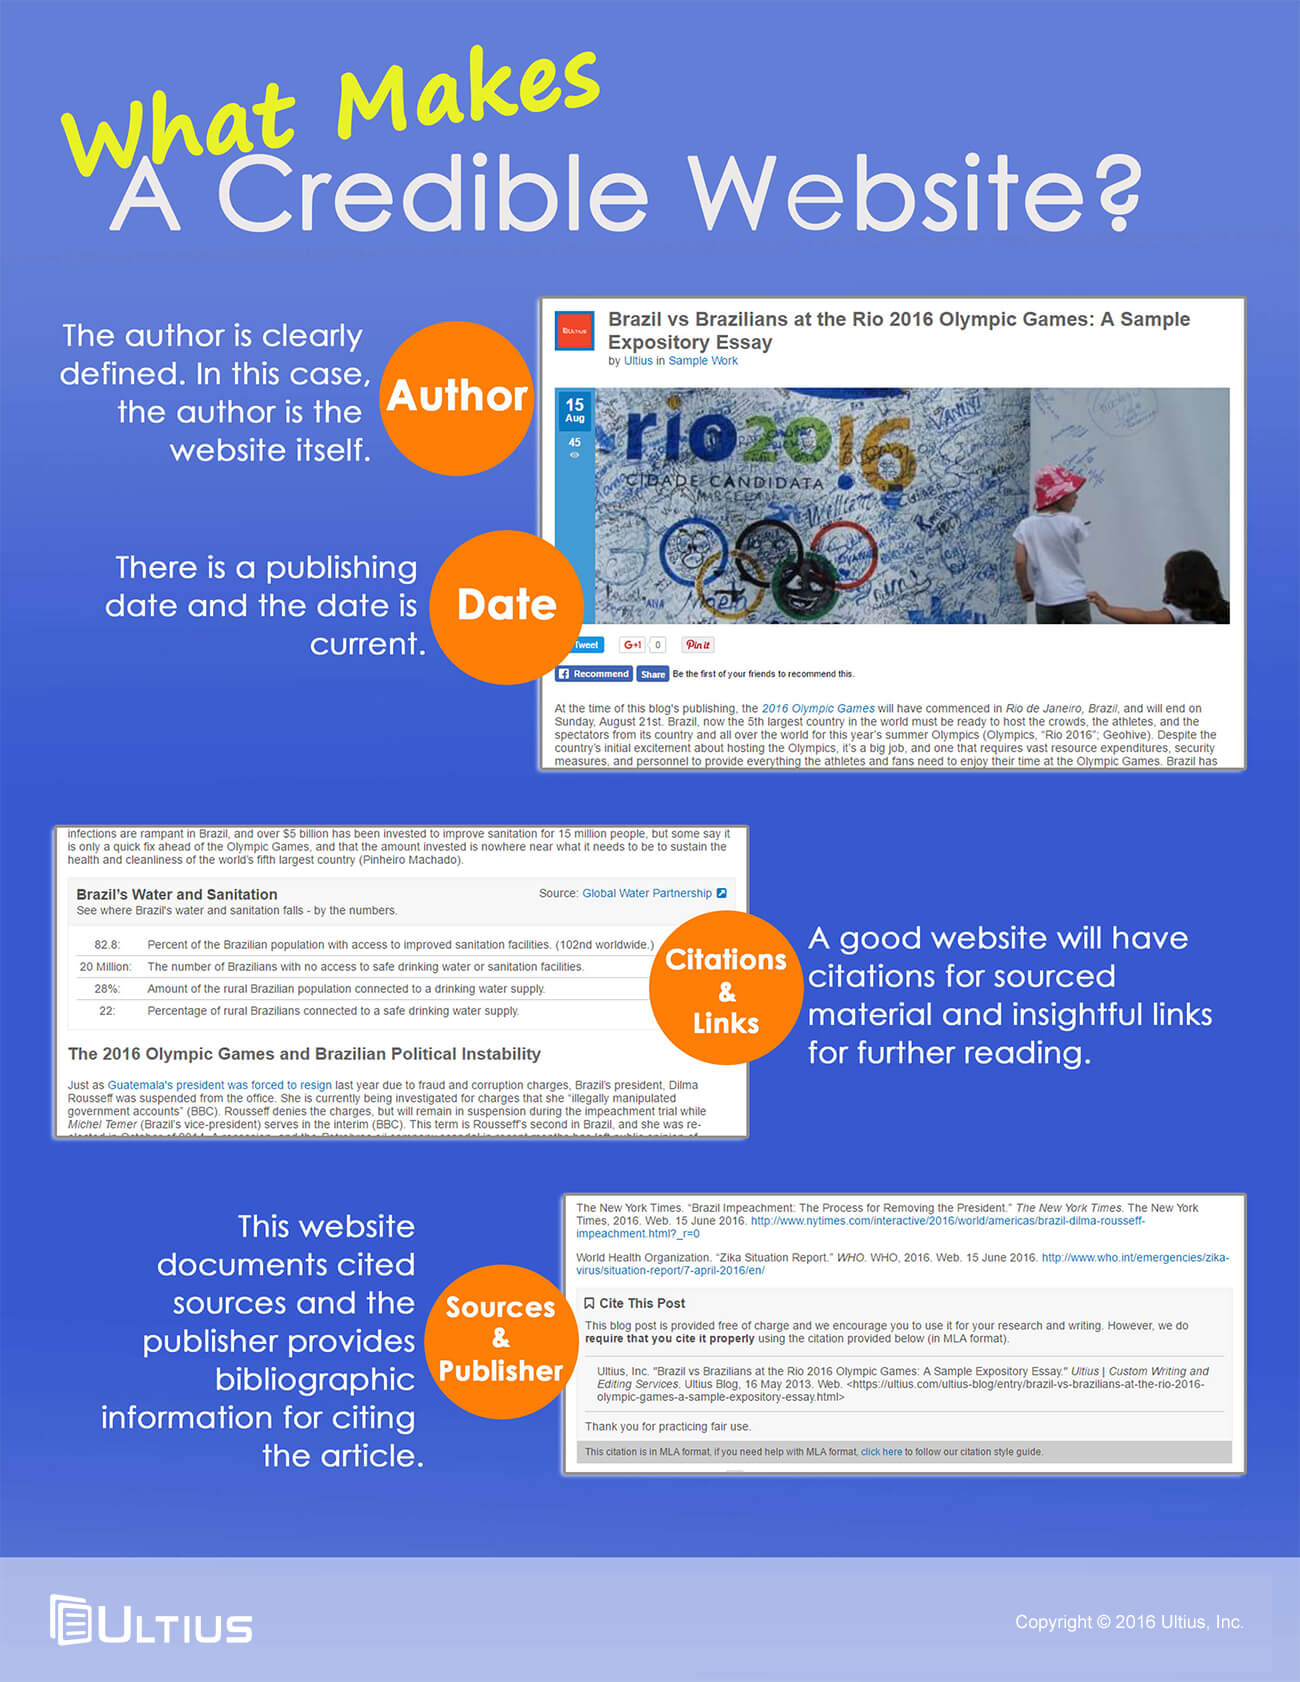 005 What Makes Website Credible Research Paper Is Cnn Source Staggering A For Full